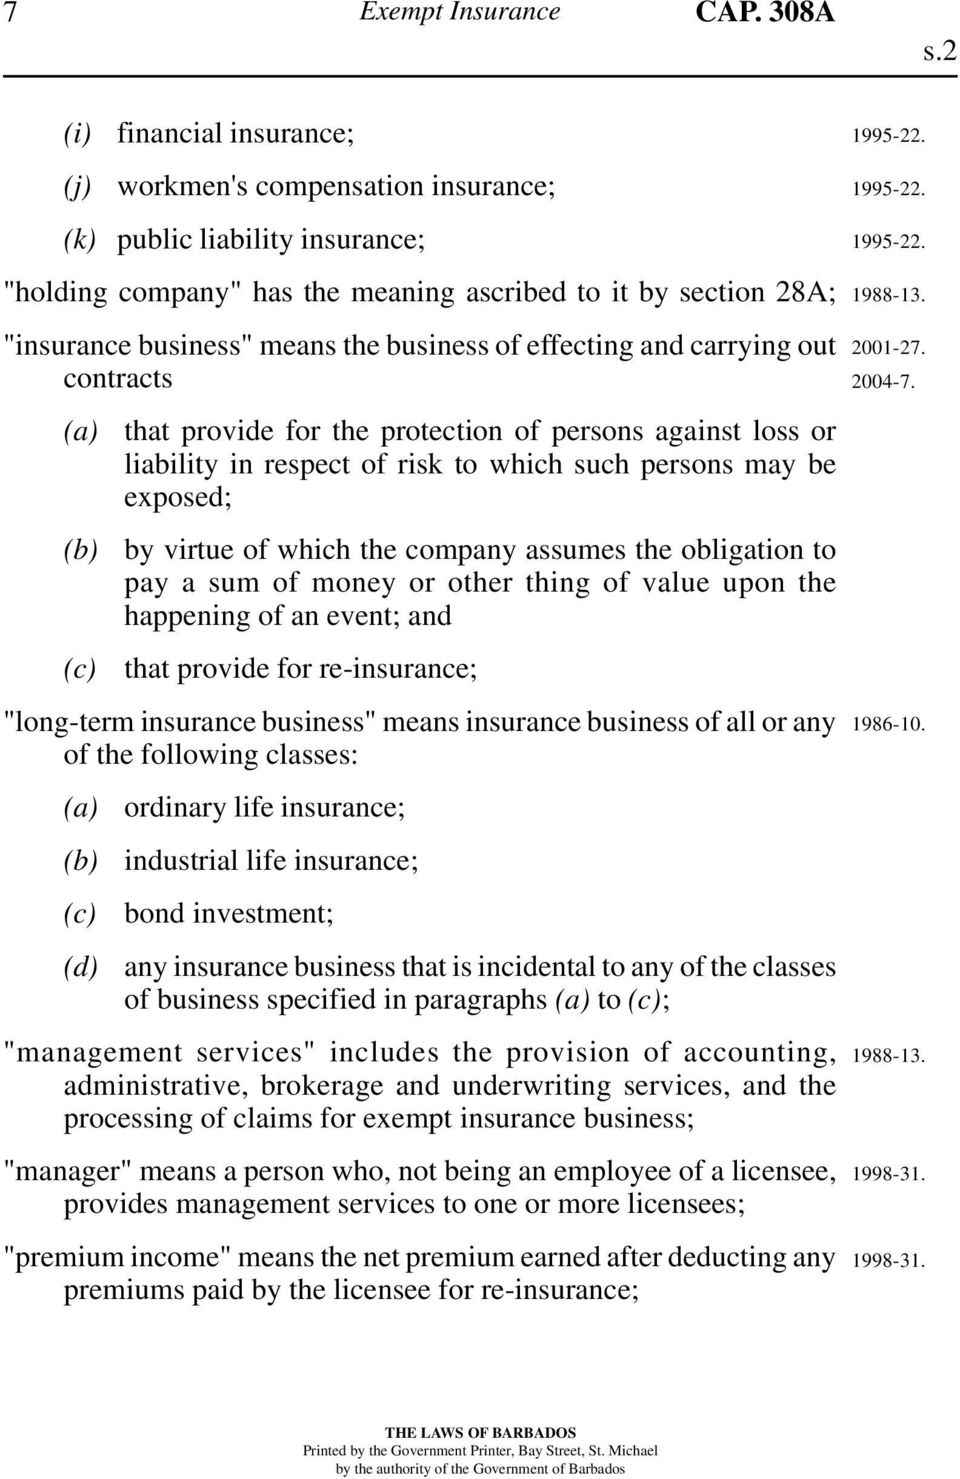 business of effecting and carrying out contracts (c) that provide for the protection of persons against loss or liability in respect of risk to which such persons may be exposed; by virtue of which